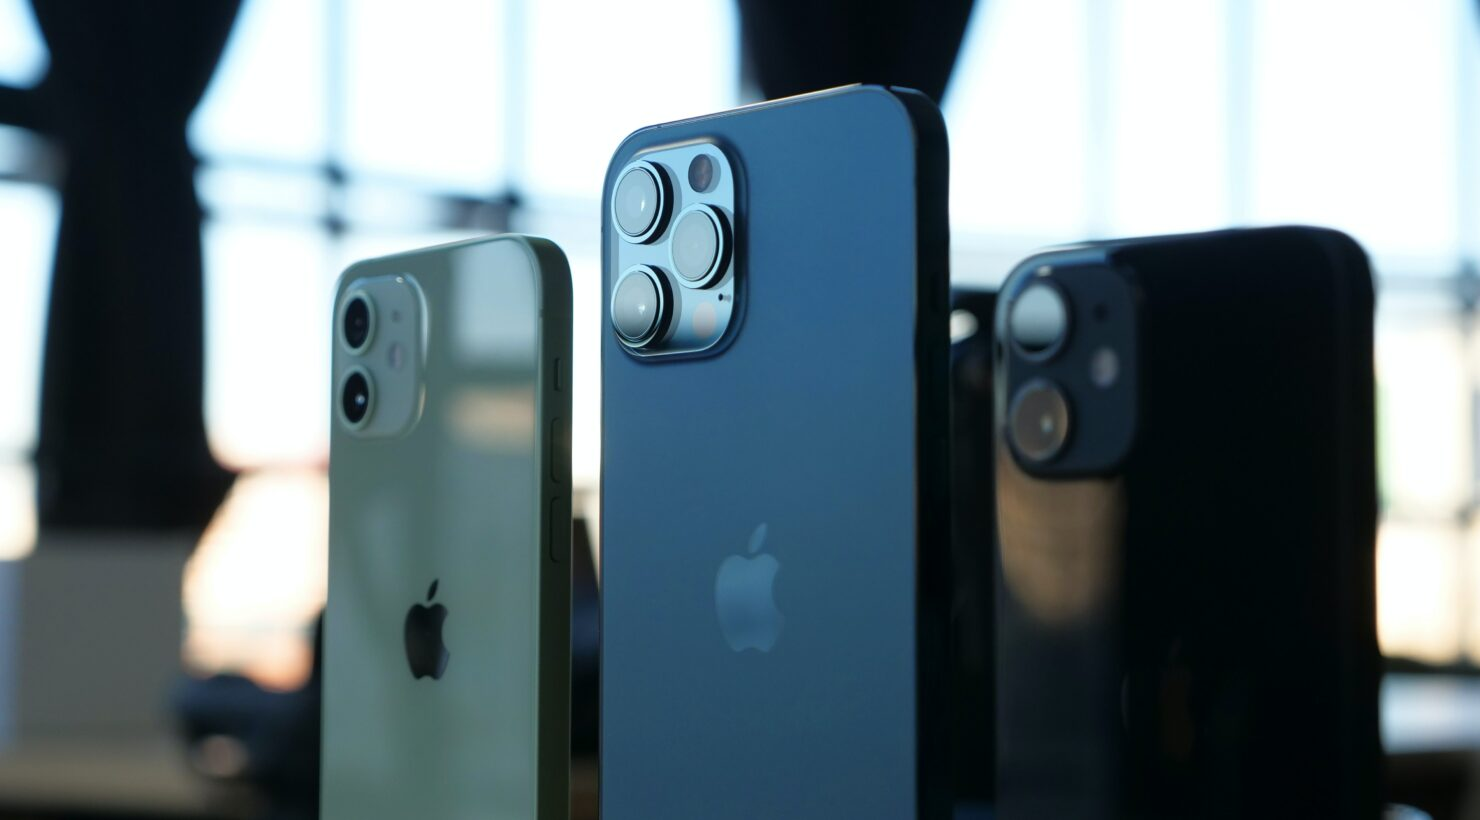 iPhone 12 Leads the Record Smartphone Shipments in Japan